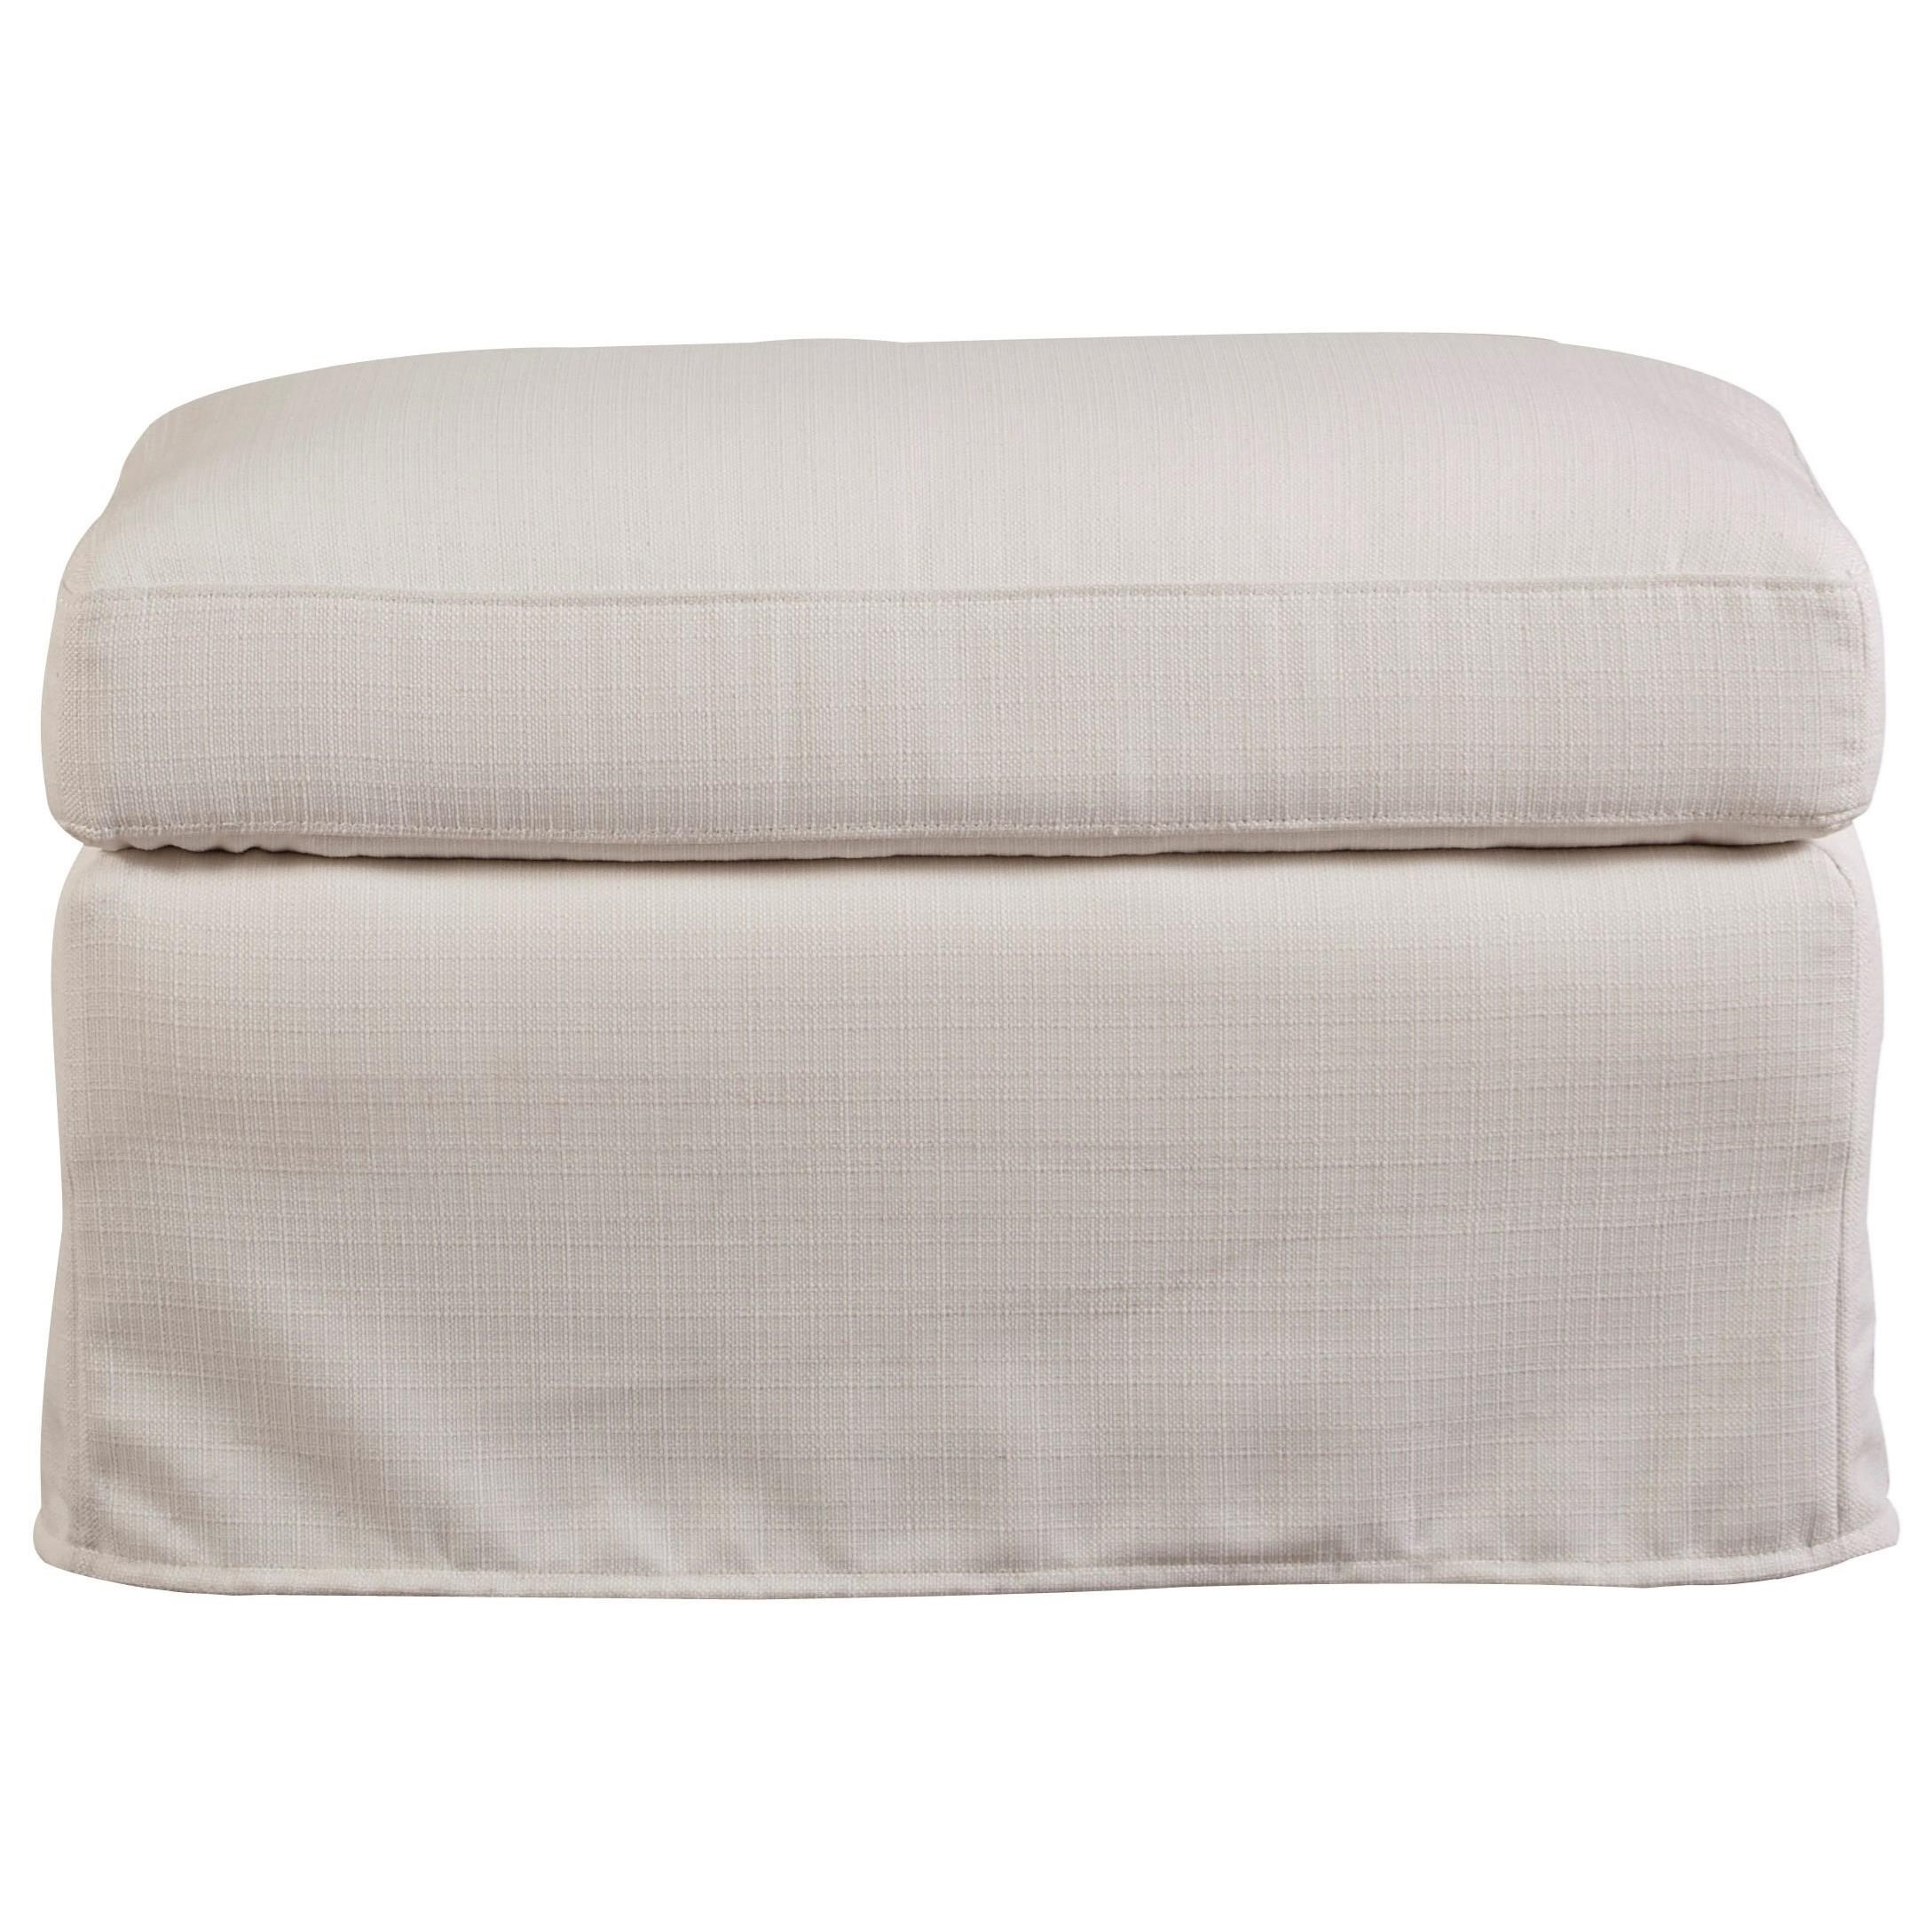 Sloane Ottoman by Universal at Baer's Furniture